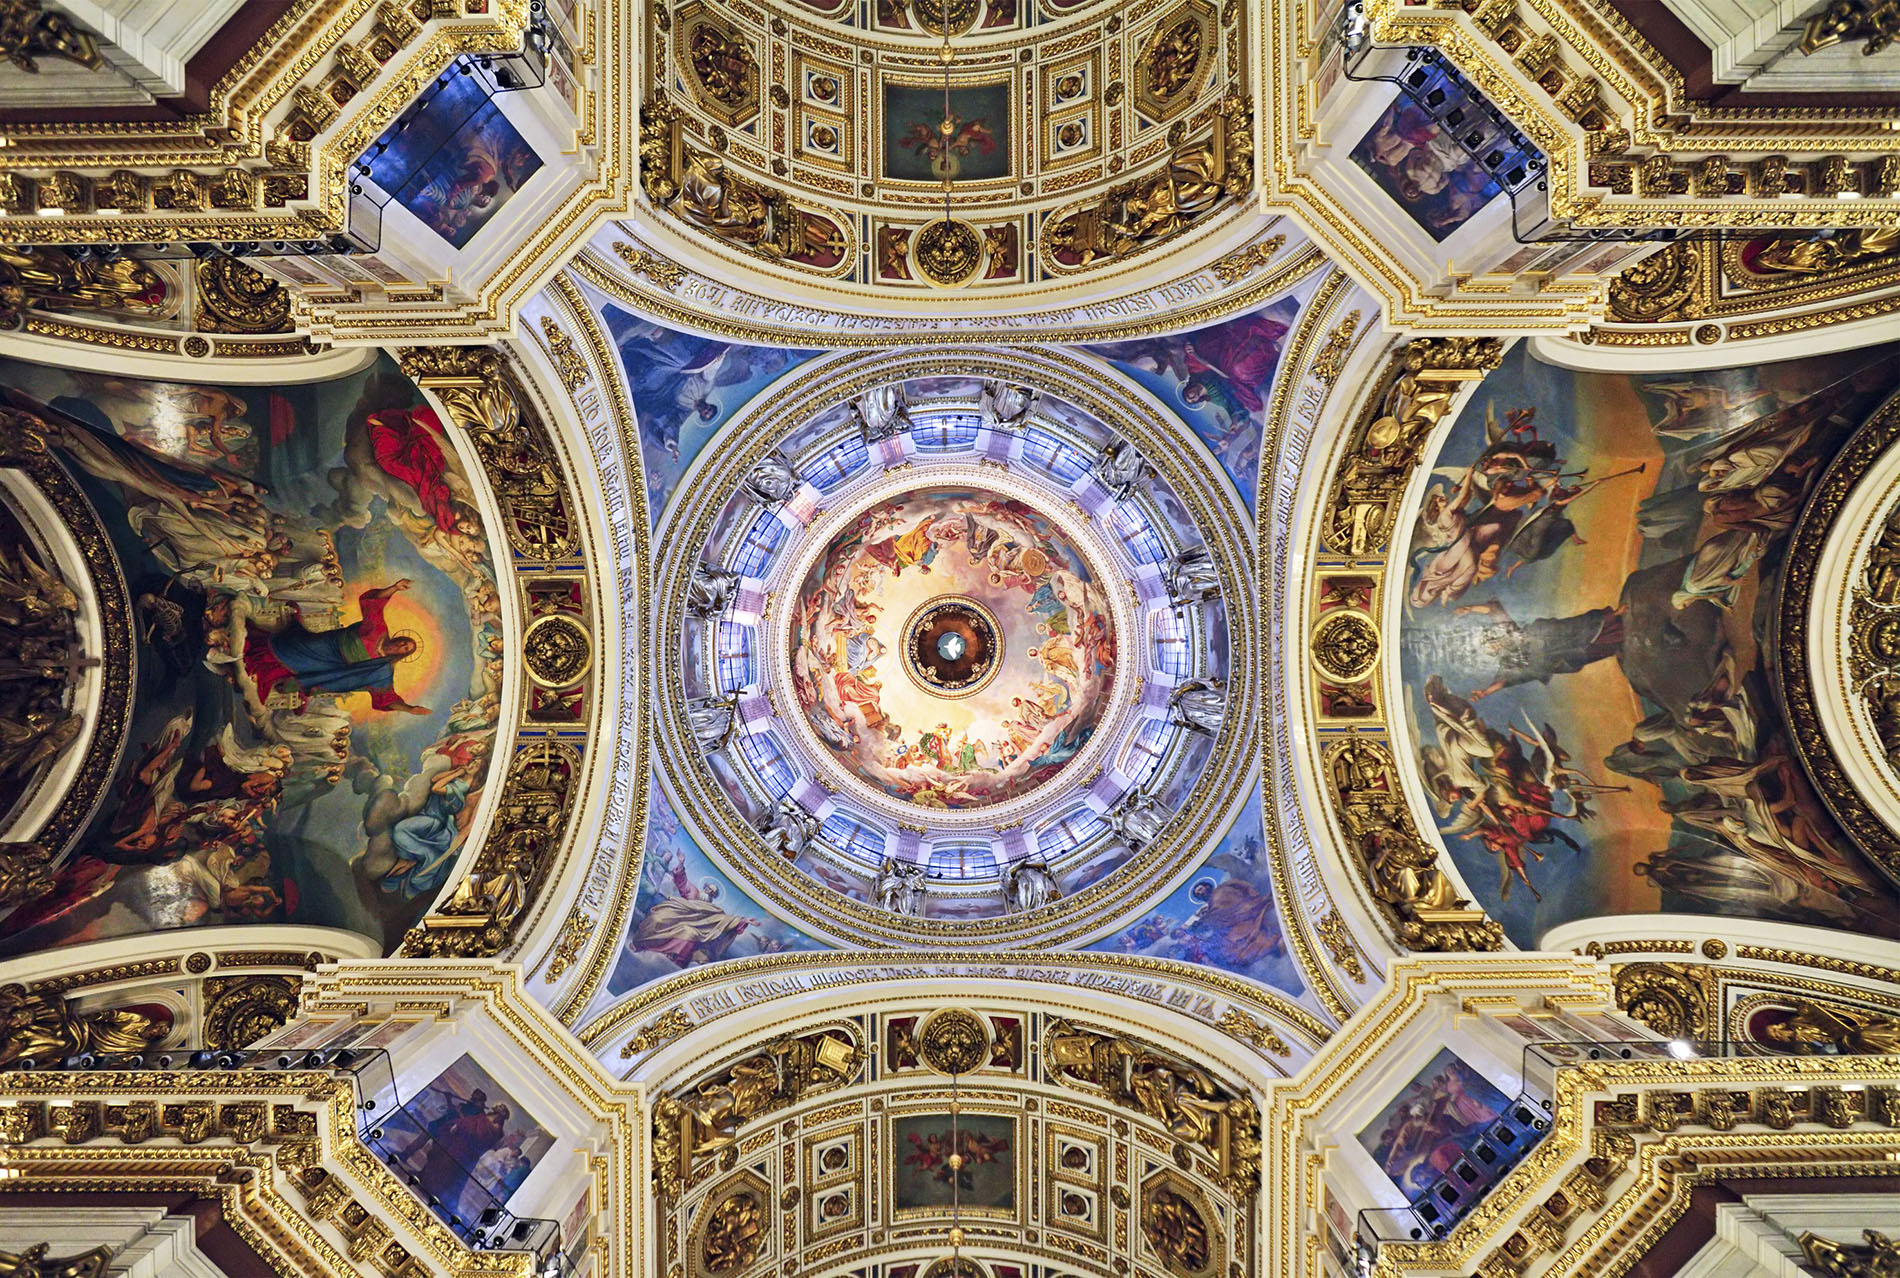 St Isaac's Cathedral ceiling art in St Petersburg, Russia